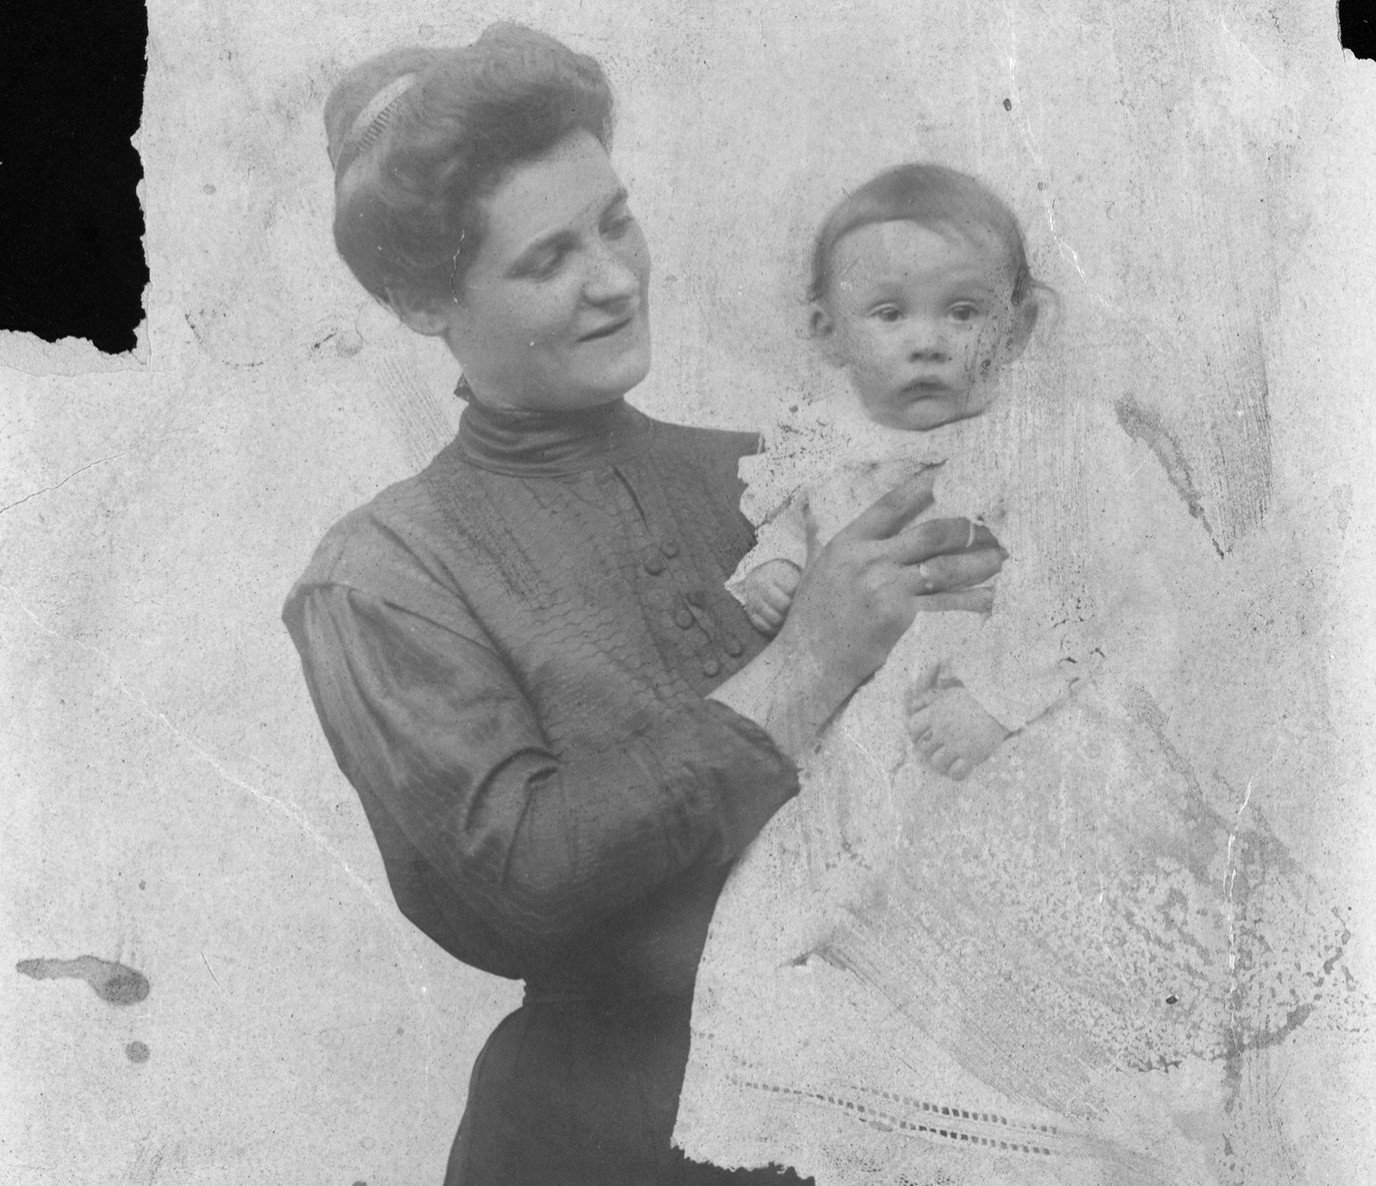 An adult woman in a dark long-sleeved dress and hair in an up-do looks to the baby dressed in white she's carrying on her side